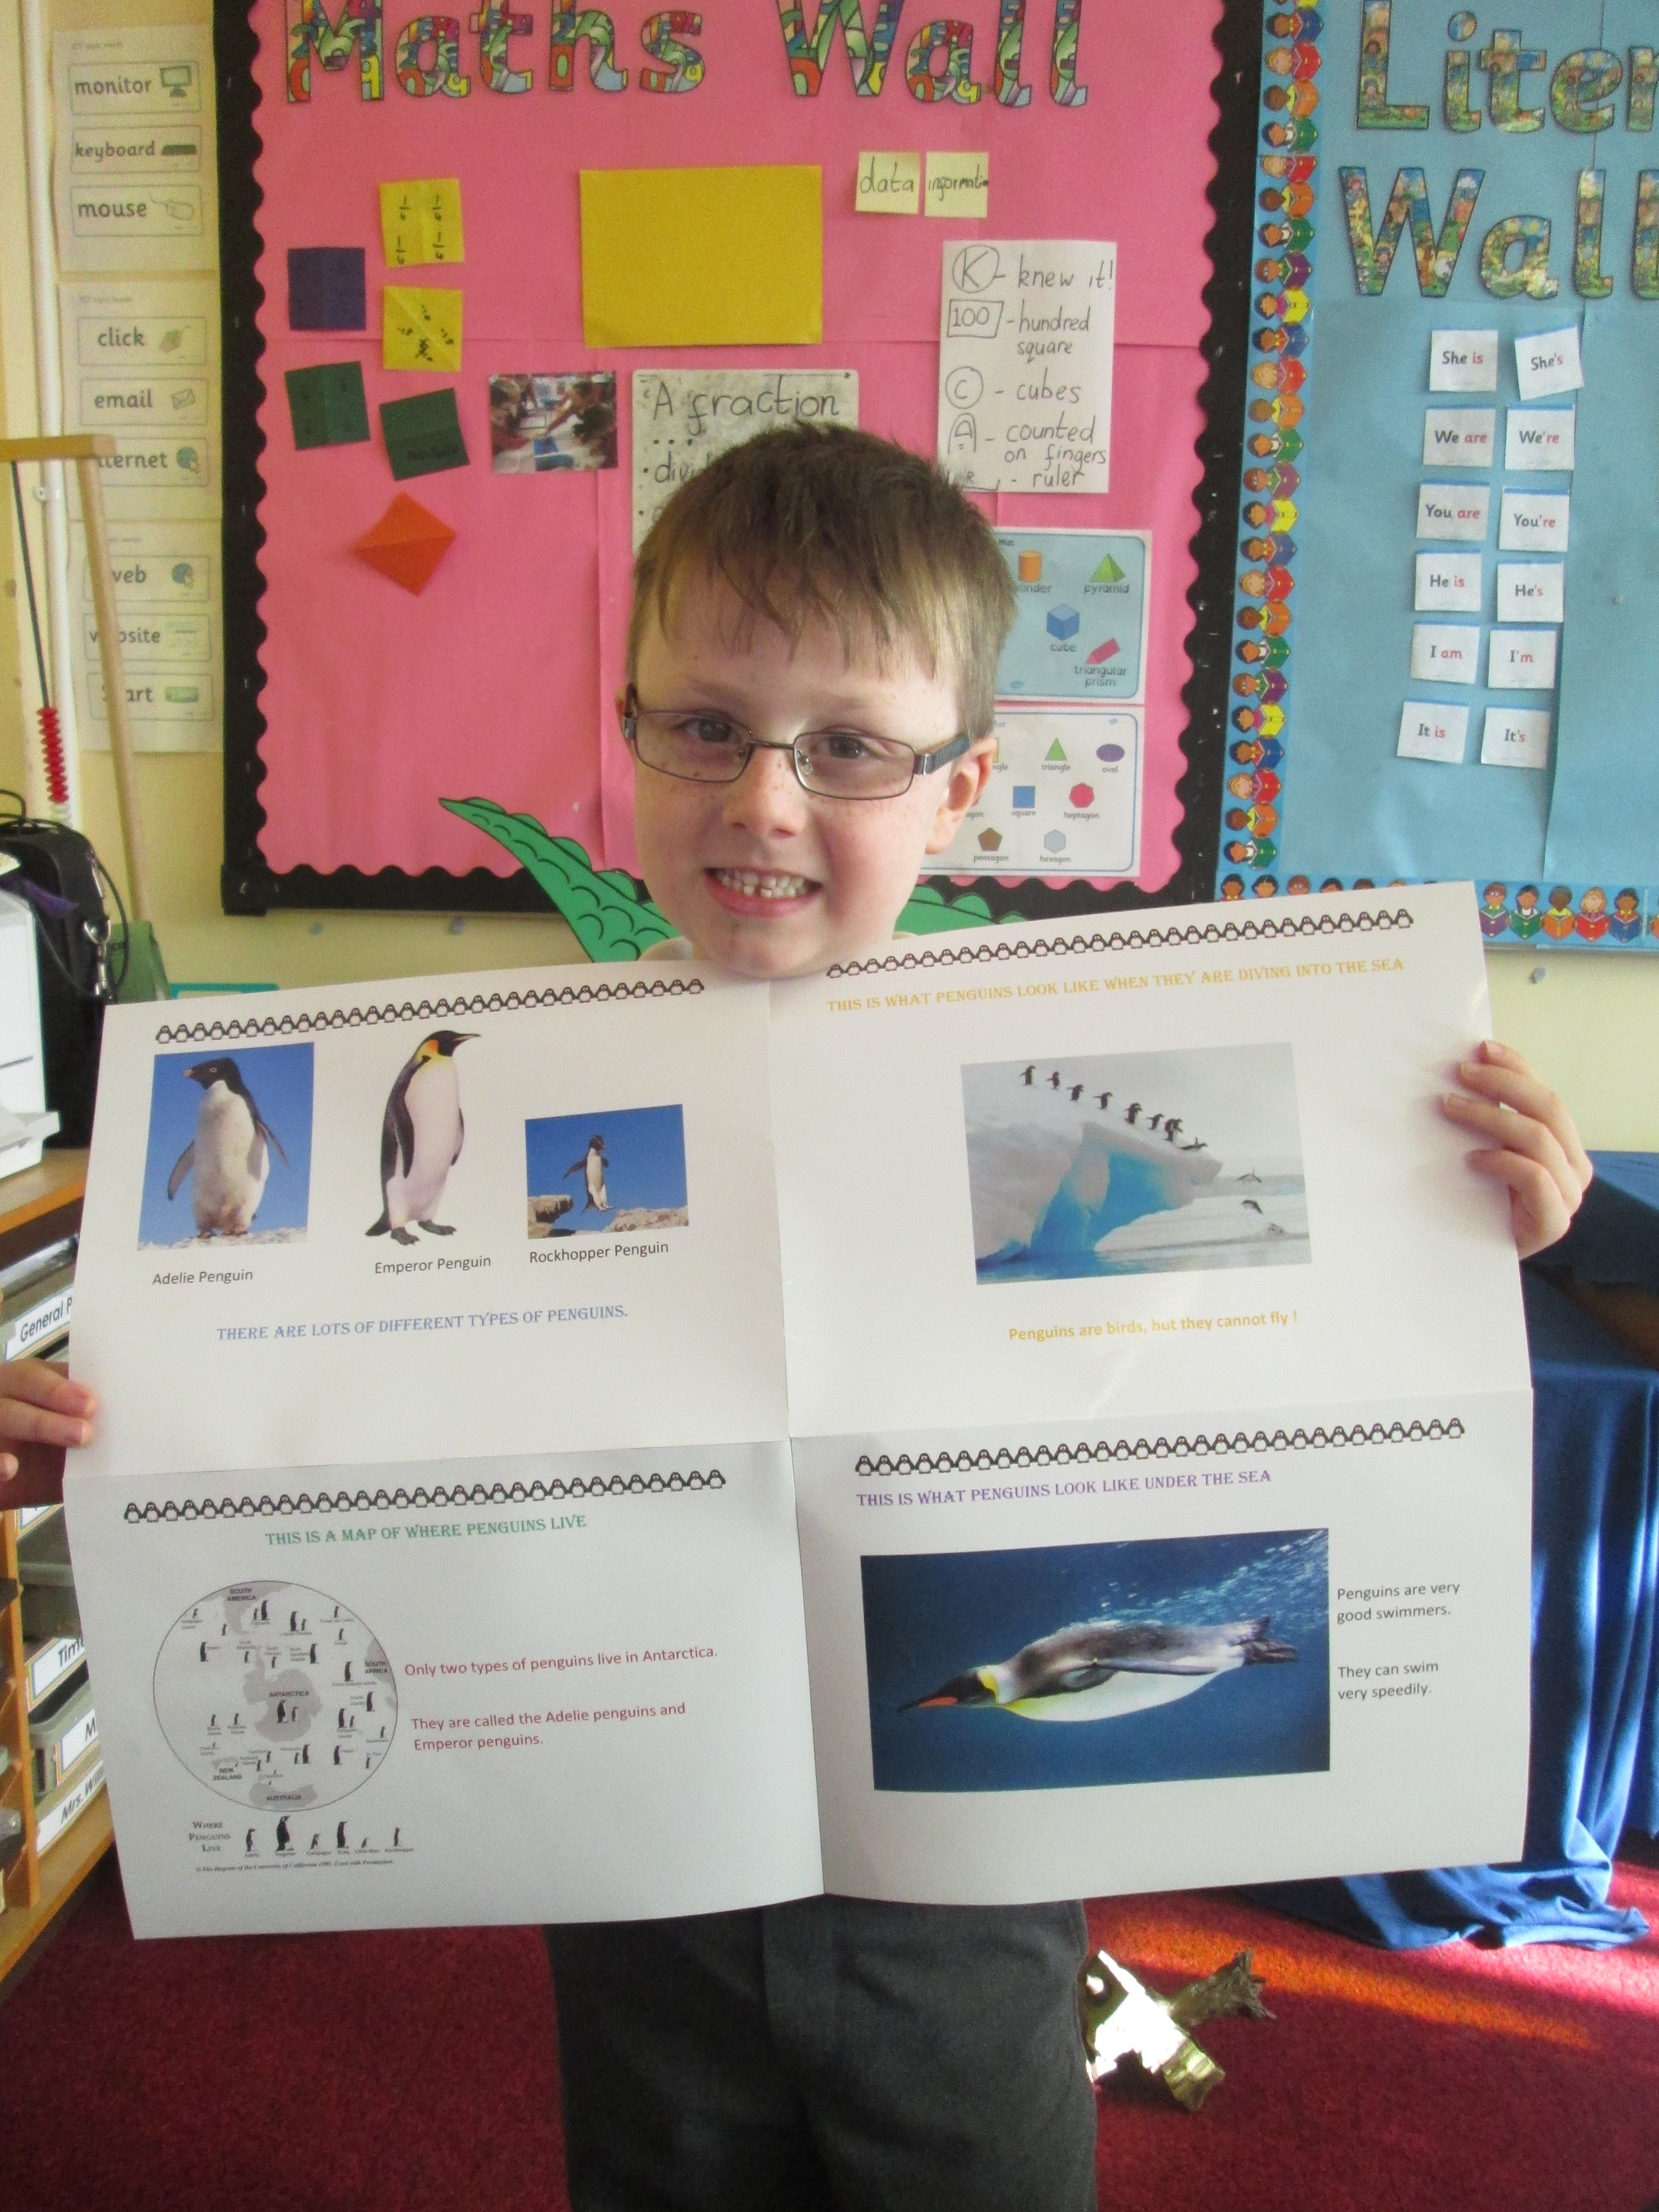 Gabriel worked very hard to produce this very impressive information poster all about penguins.